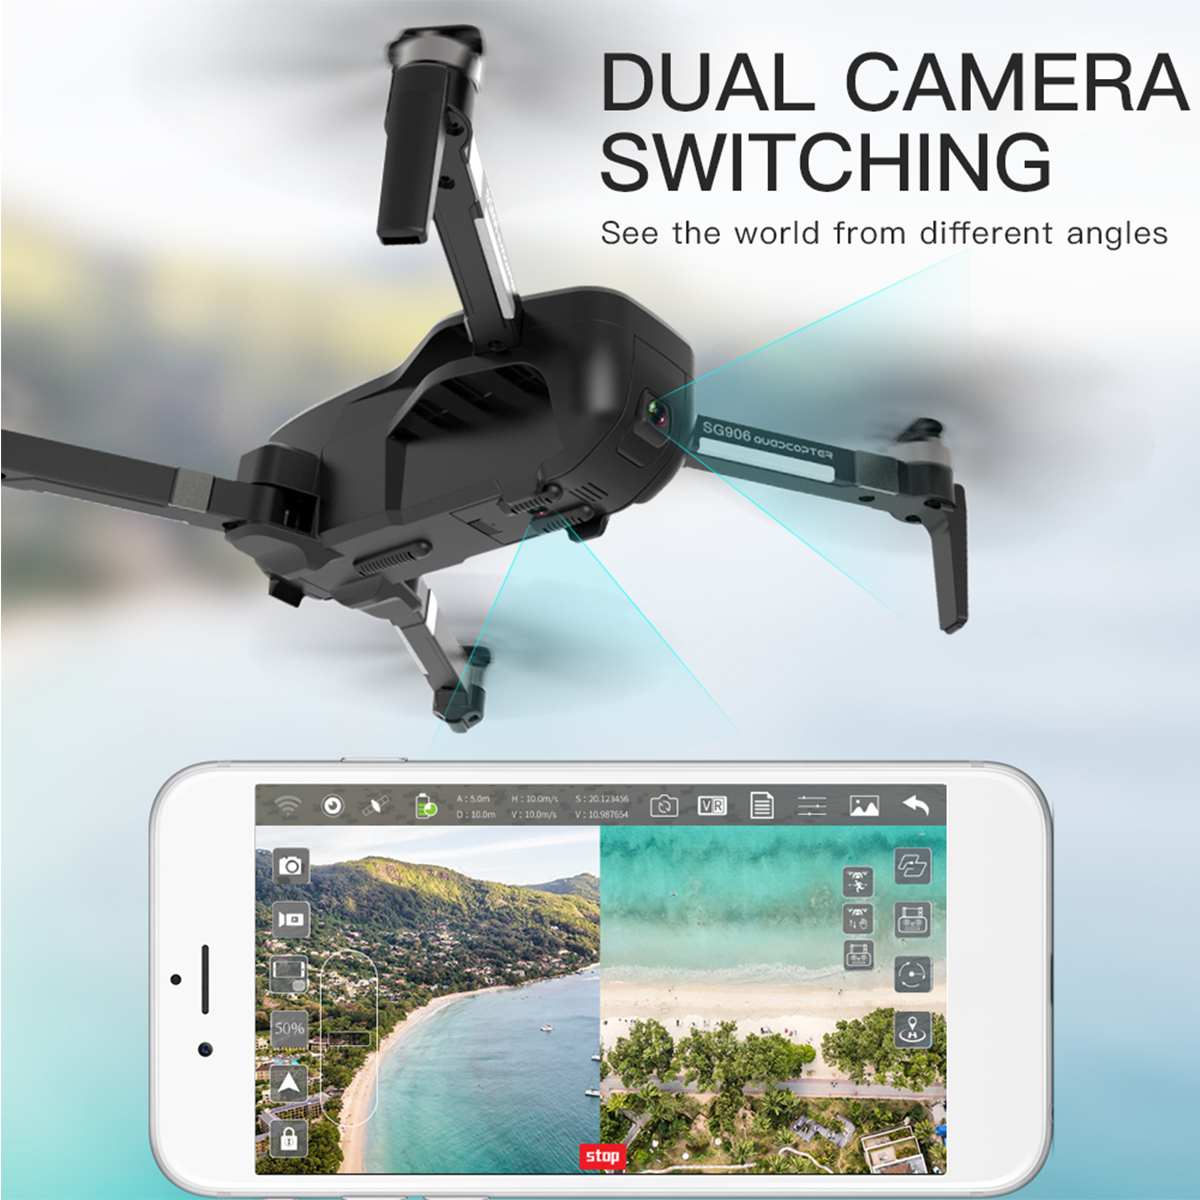 SG906 Wirless Drone Rotating Camera Quadcopter Aerial Photography RC Helicopter With GPS Positioning Route Plan Fuction 1